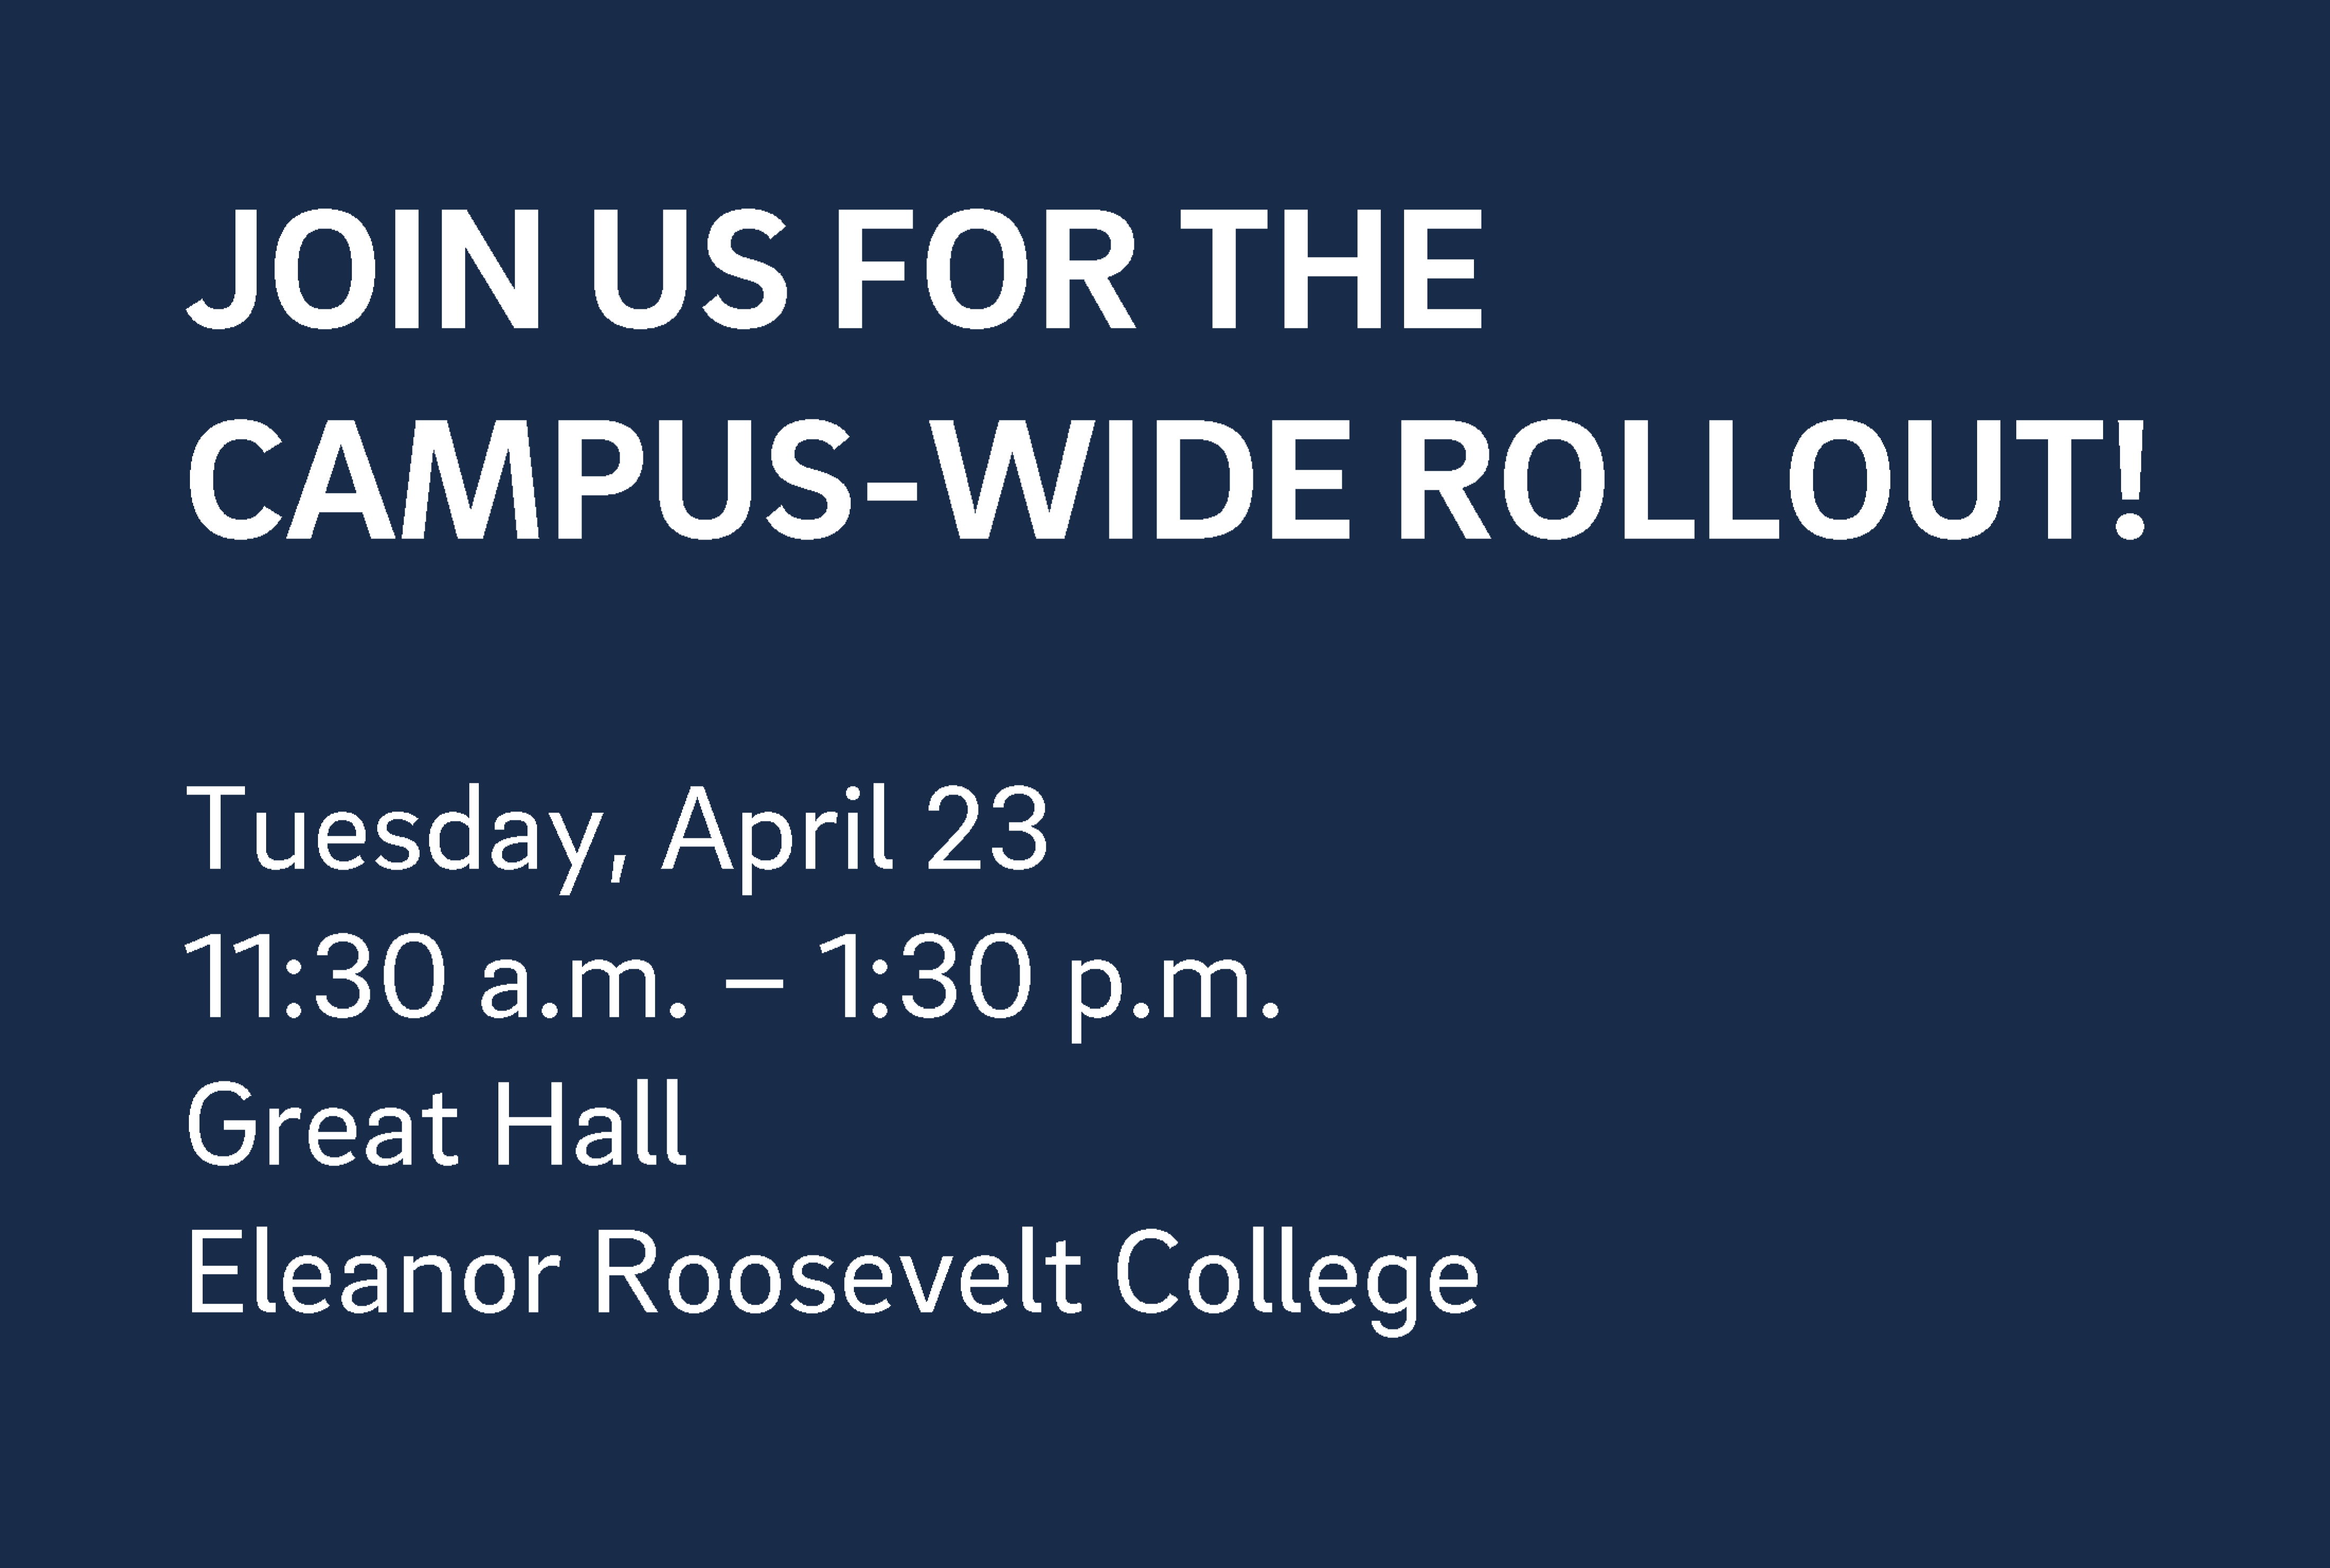 JOIN US FOR THE CAMPUS-WIDE ROLLOUT!  Tuesday, April 23 11:30 a.m. – 1:30 p.m. Great Hall Eleanor Roosevelt College